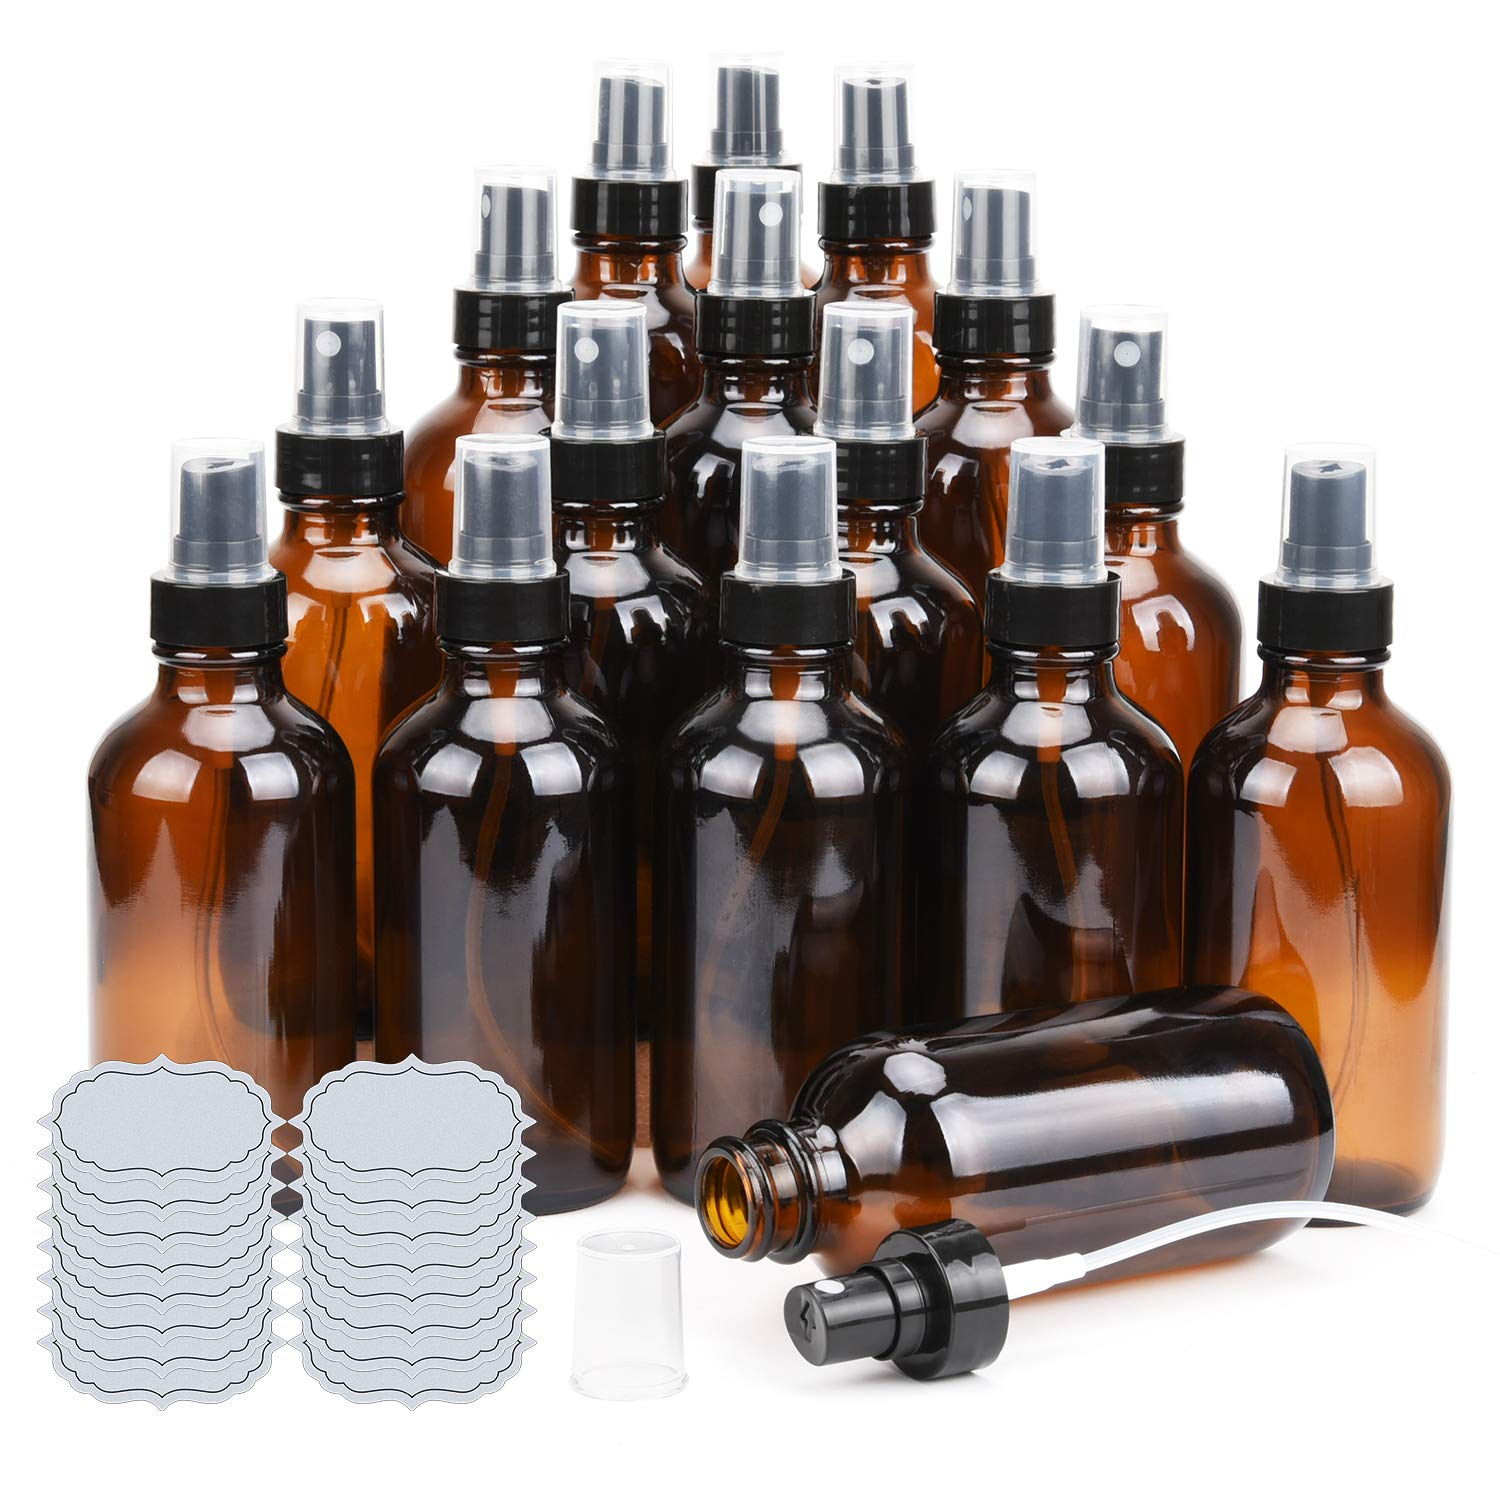 Amber Glass Spray Bottles 4oz ULG Fine Mist Sprayers Empty Spray Atomizer for Essential Oils Aromatherapy Cosmetic Sprays Including Waterproof DIY Labels 16 Piece